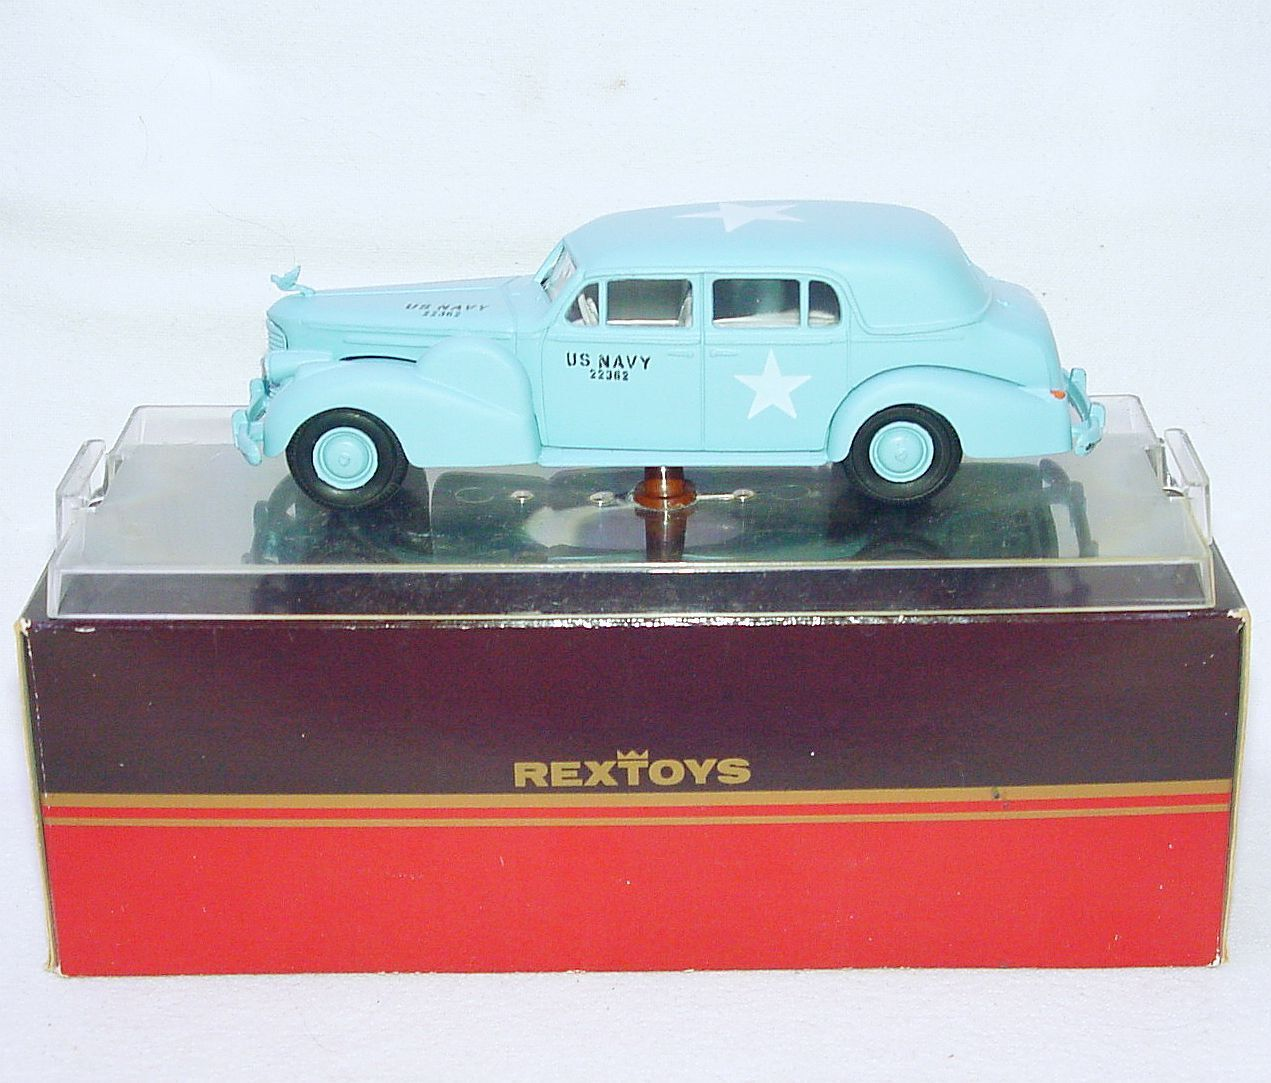 REXTOYS Portugal 1 43 WW2 US NAVY ILLAC V16 1938 Army Command voiture véhicule Comme neuf IN BOX